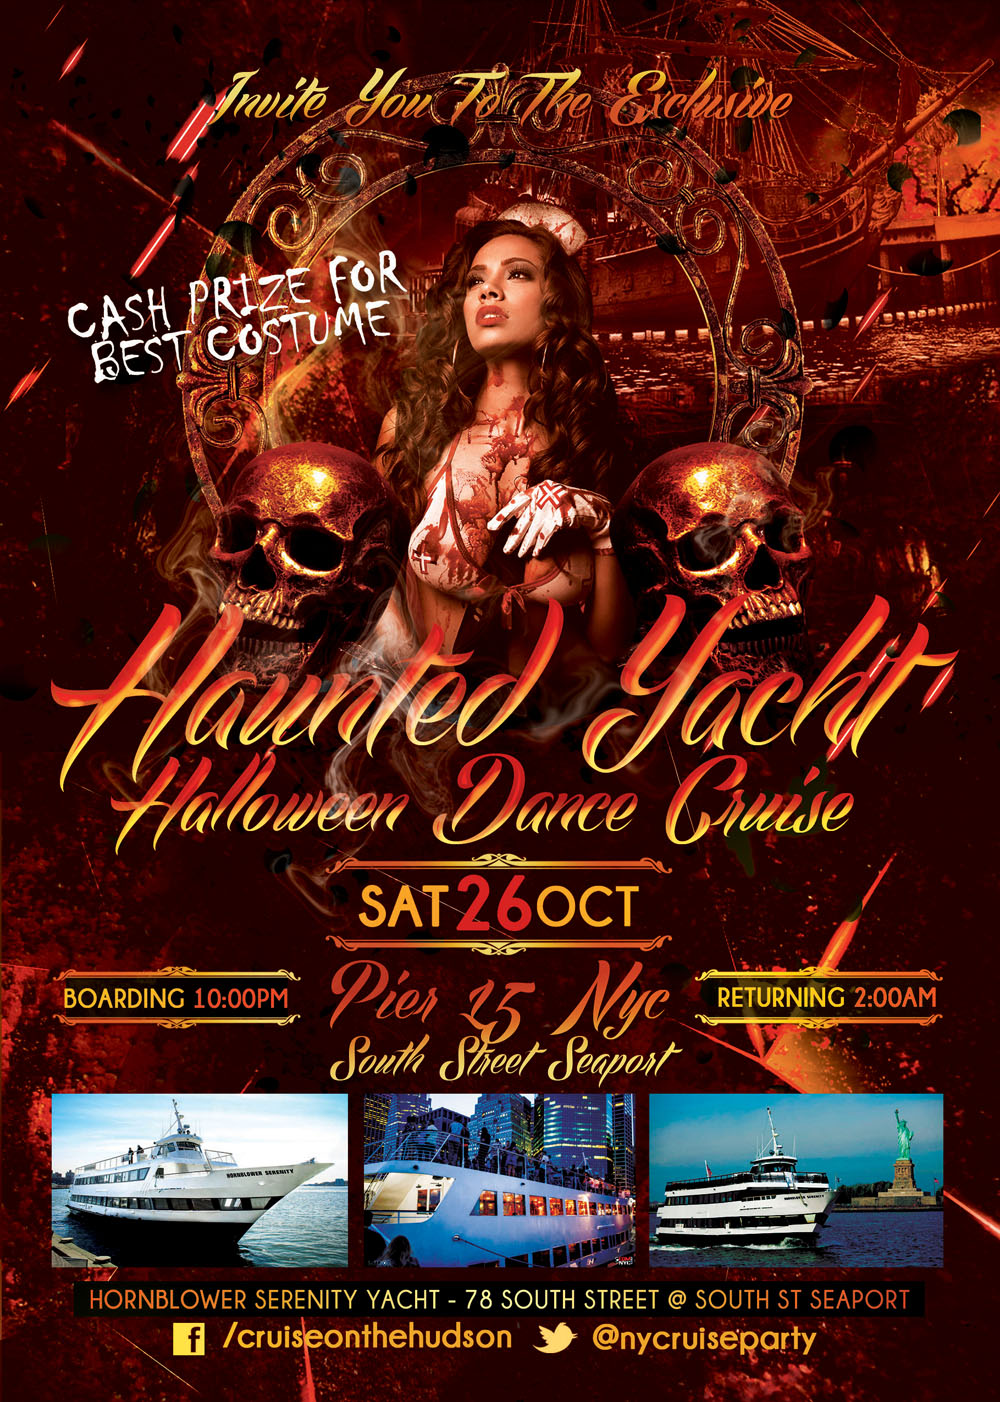 nyc-halloween-dance-cruise-haunted-yacht-nyc-serenity-boat-2019.jpg